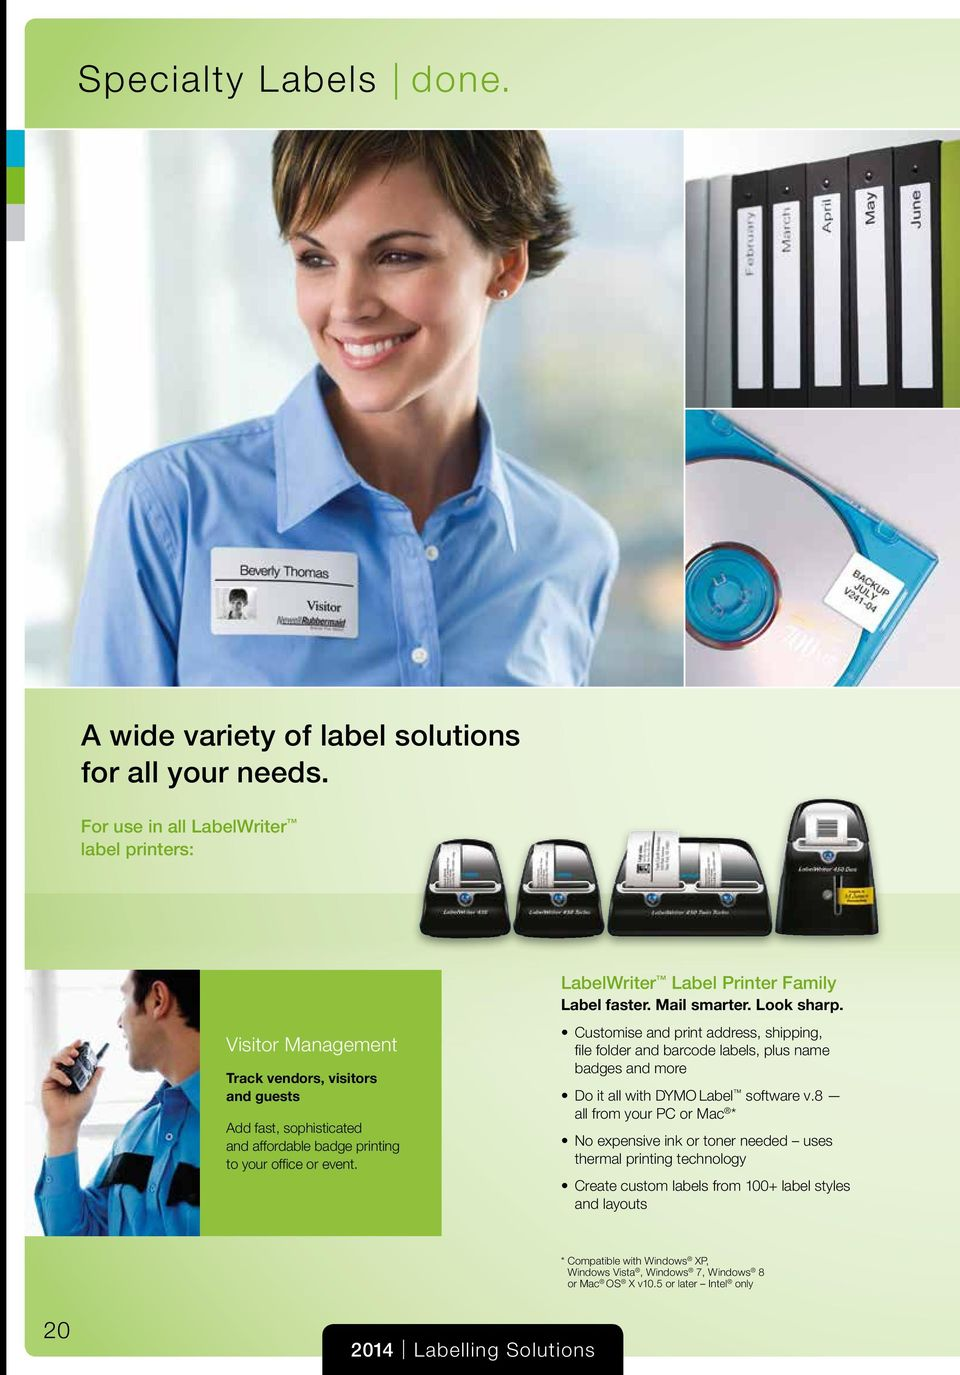 LabelWriter Label Printer Family Label faster. Mail smarter. Look sharp.